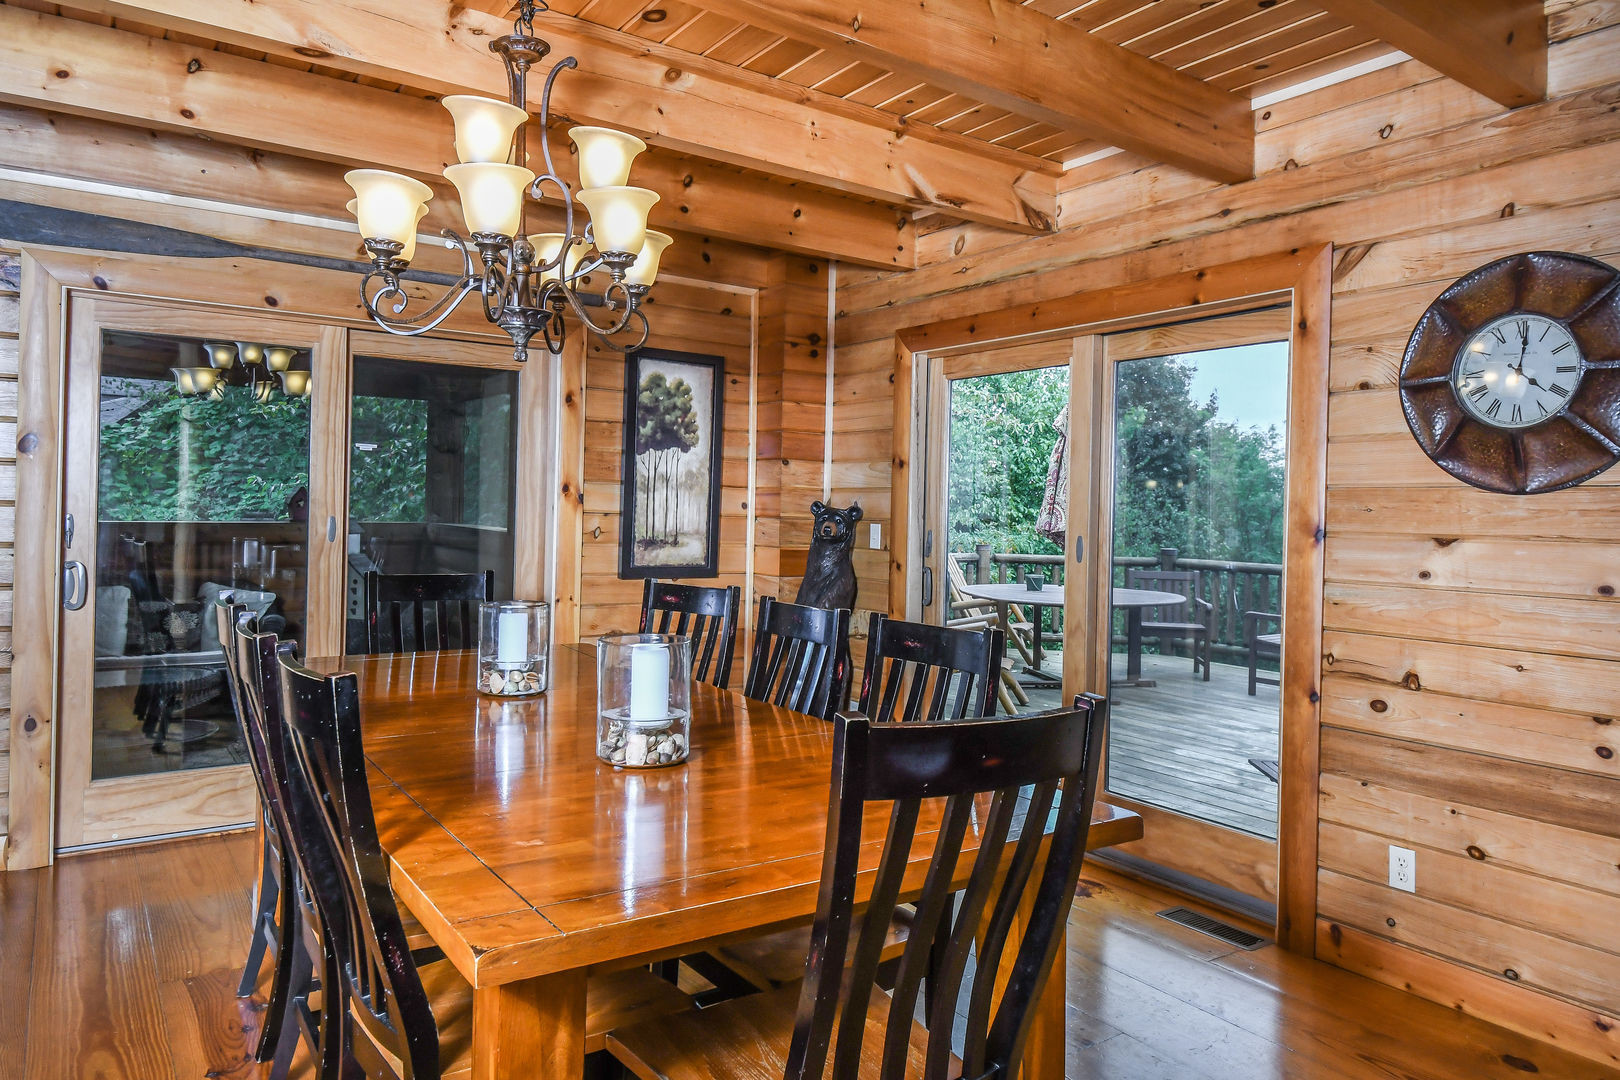 hardwood flooring pittsburgh pa of highlands heaven taylor made deep creek vacations sales inside image 152862579